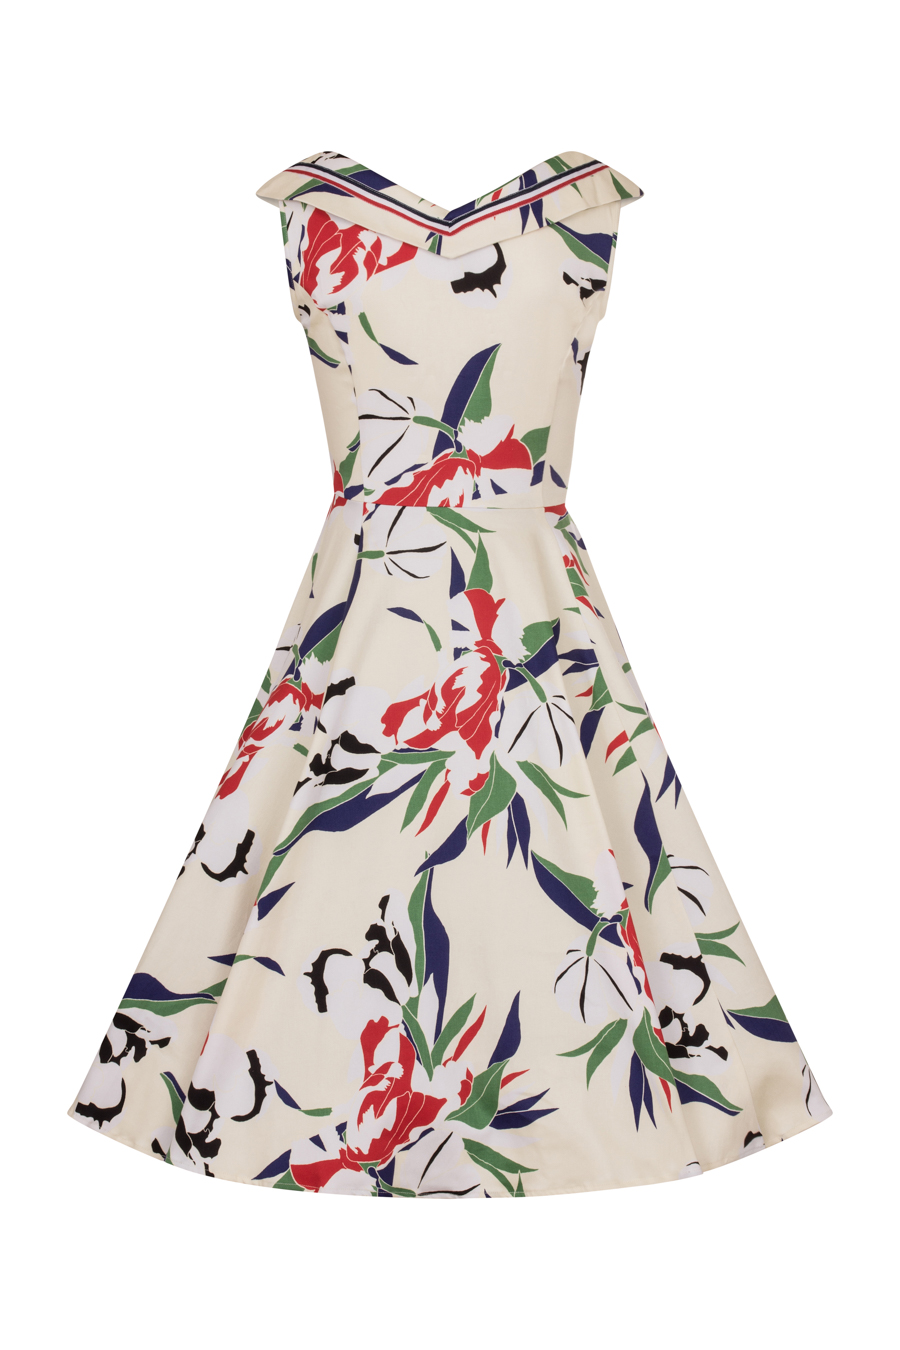 Heaps of Leaves Sailor Dress